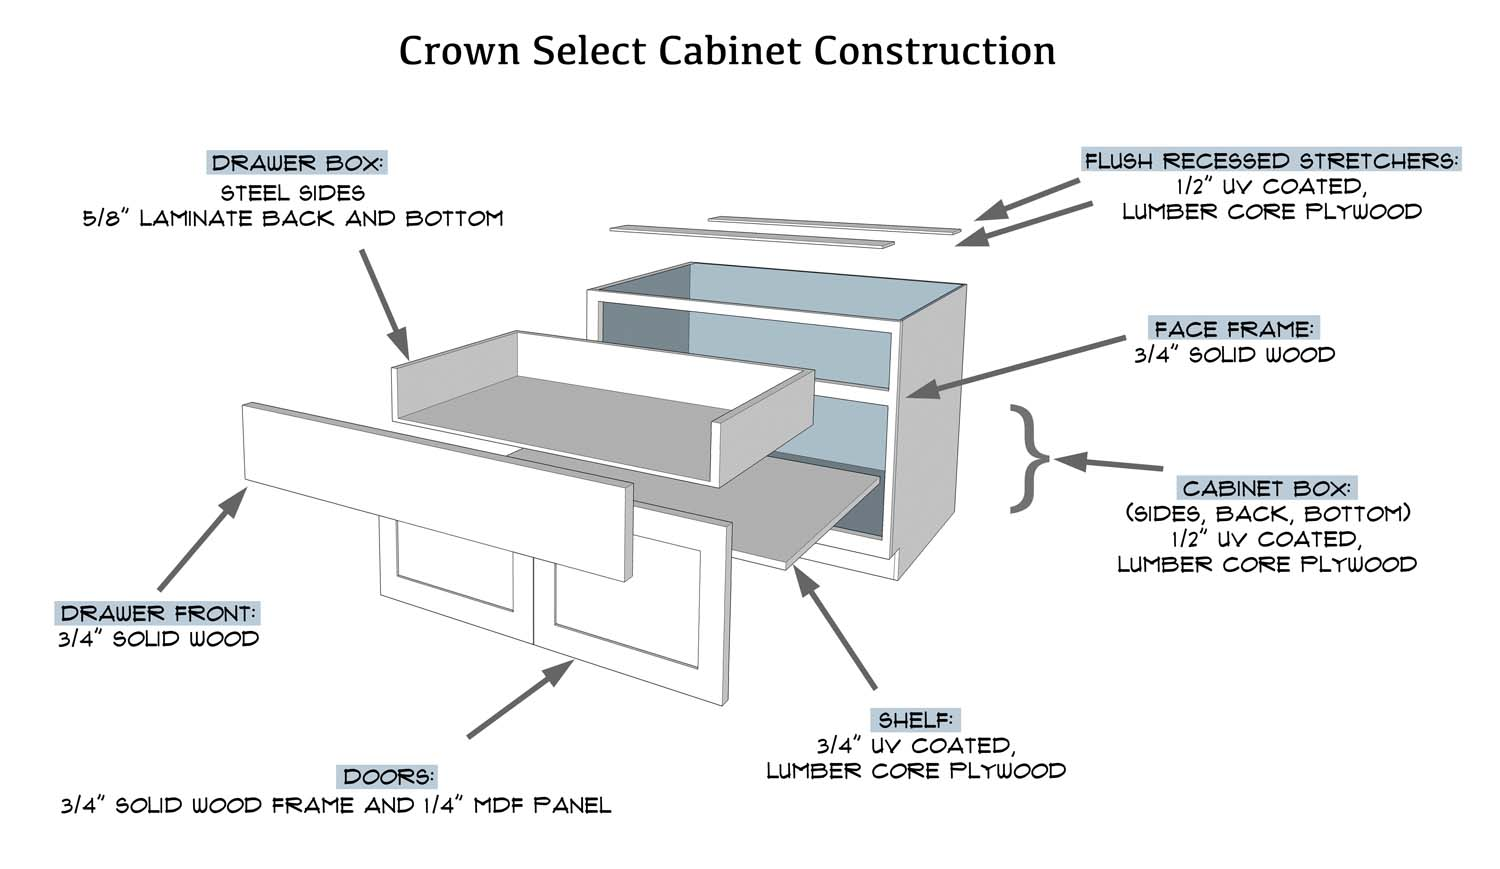 The Face Frame Of The Cabinet Is Solid Wood, 3/4u2033 Thick. The Drawer Fronts  Are Solid Wood, 3/4u2033 Thick. Our Doors Are Also 3/4u2033 Thick, Solid Wood With  1/4u2033 ...